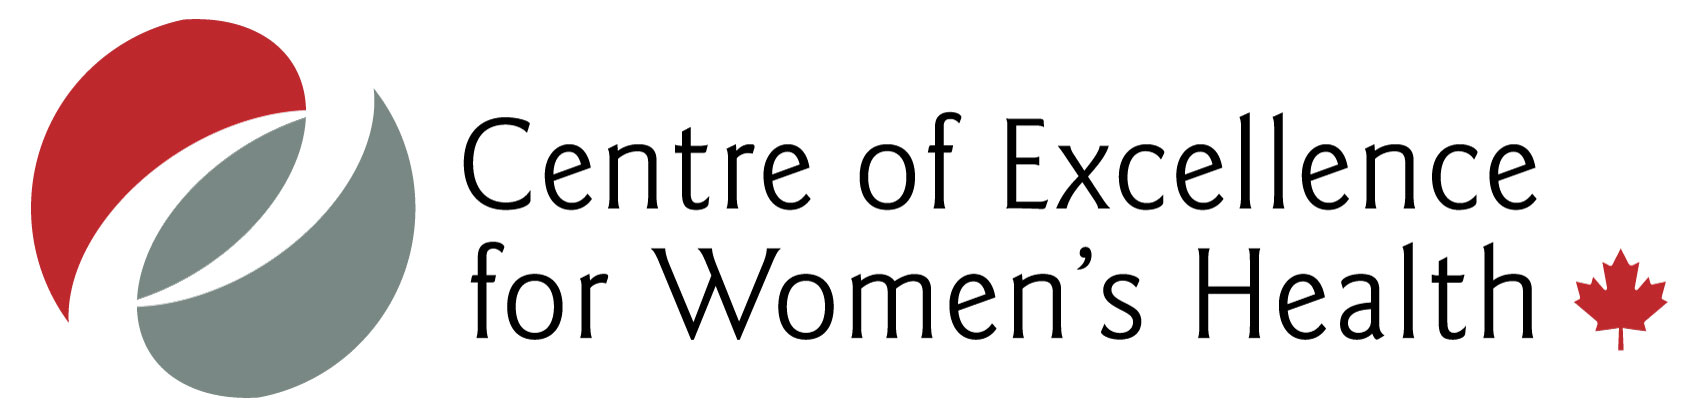 Centre of Excellence for Women's Health - Logo